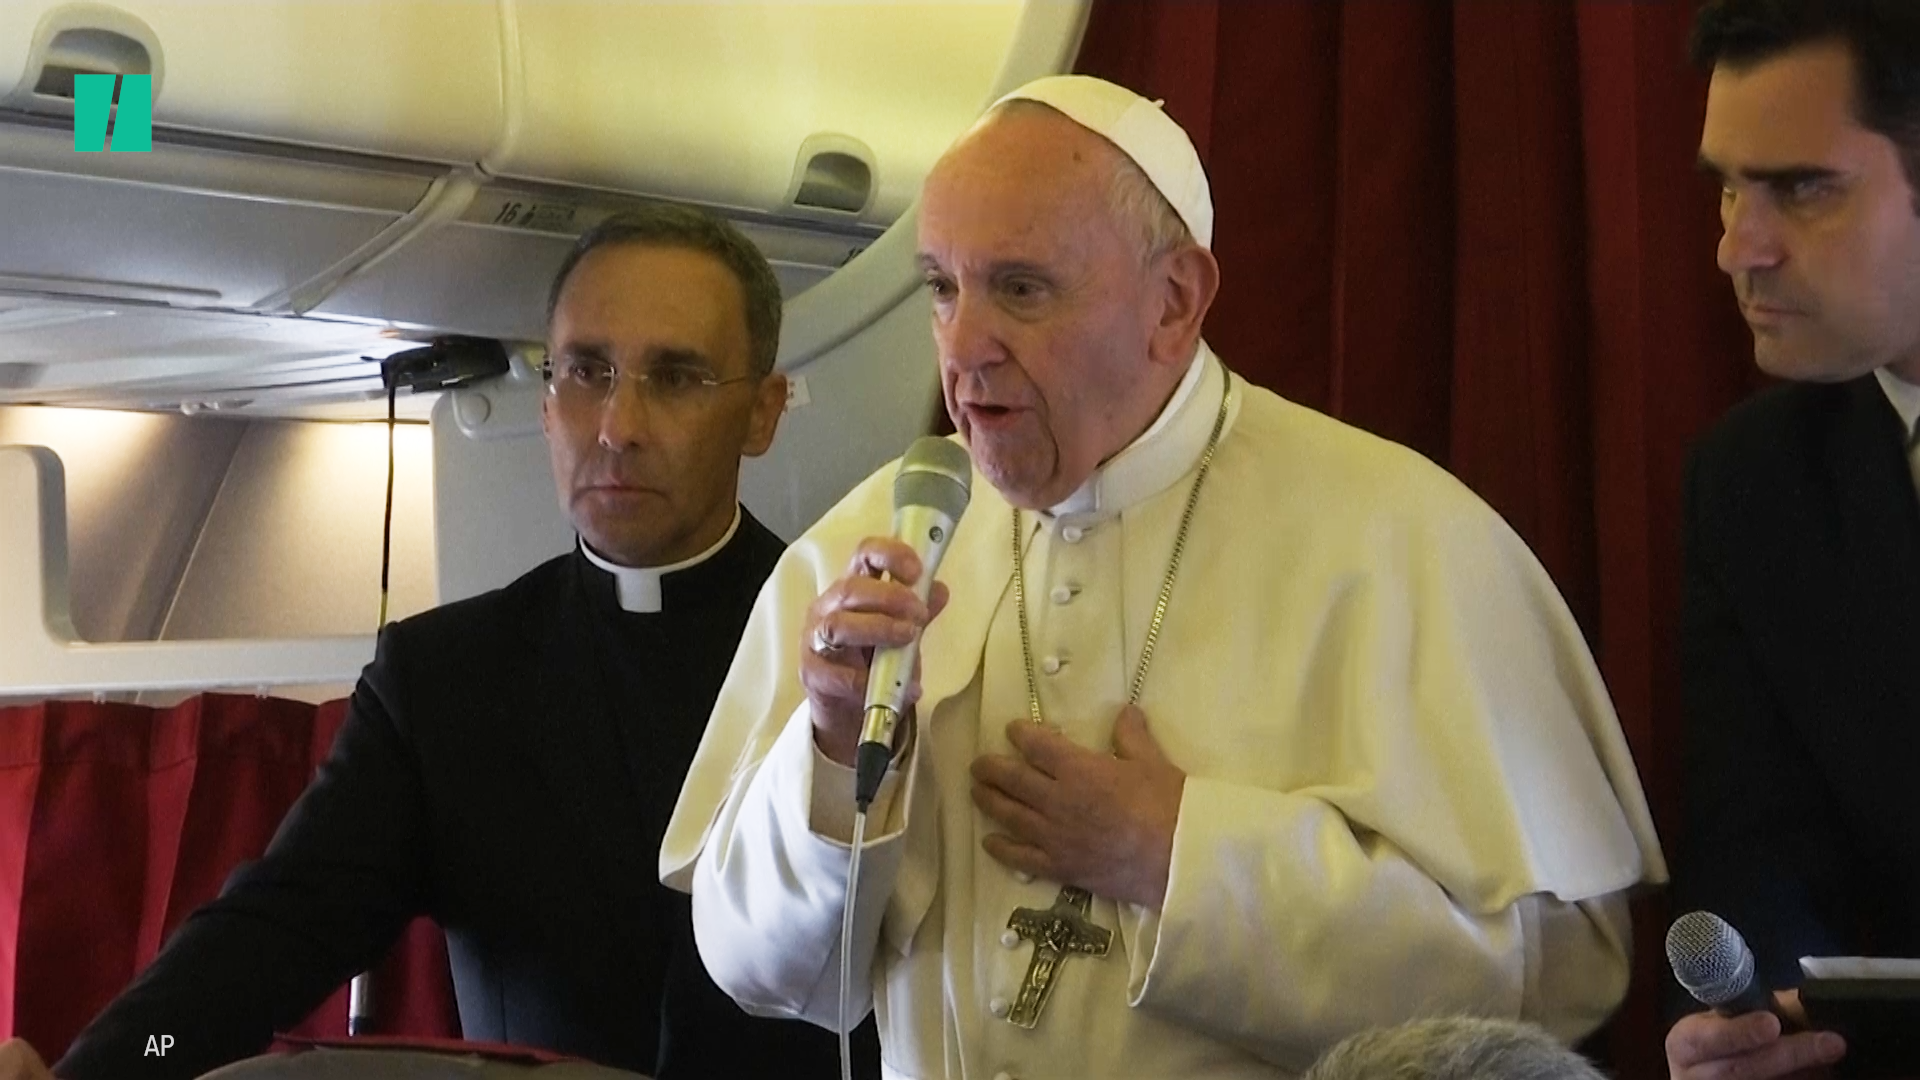 Pope Francis, Who Chided Trump's Border Wall, Gives $500,000 To Migrants In Mexico